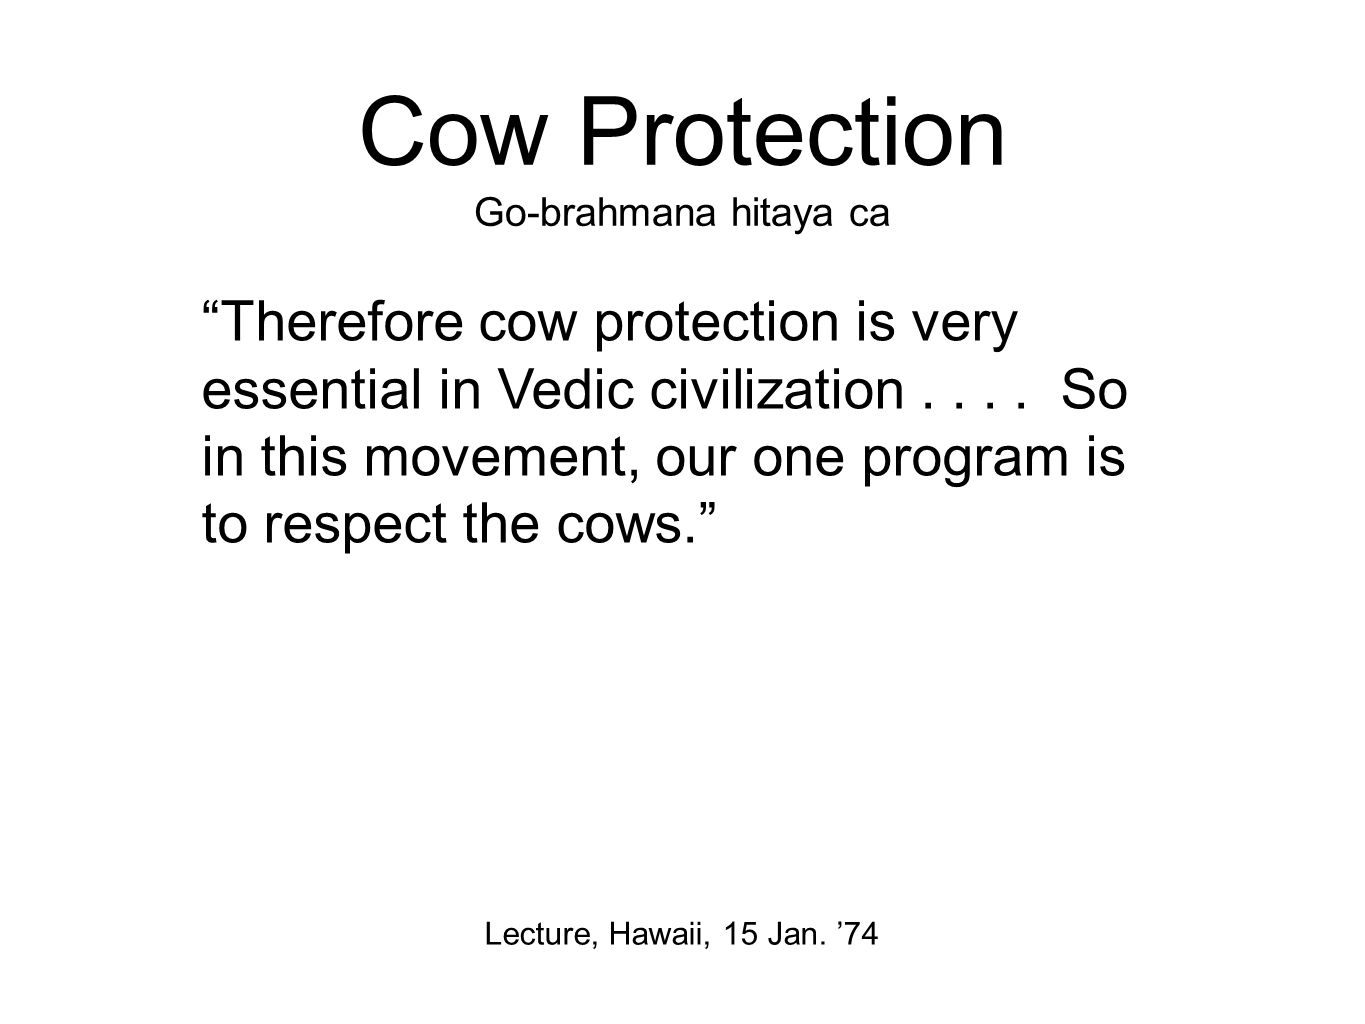 Cow Protection Go-brahmana hitaya ca Therefore cow protection is very essential in Vedic civilization....